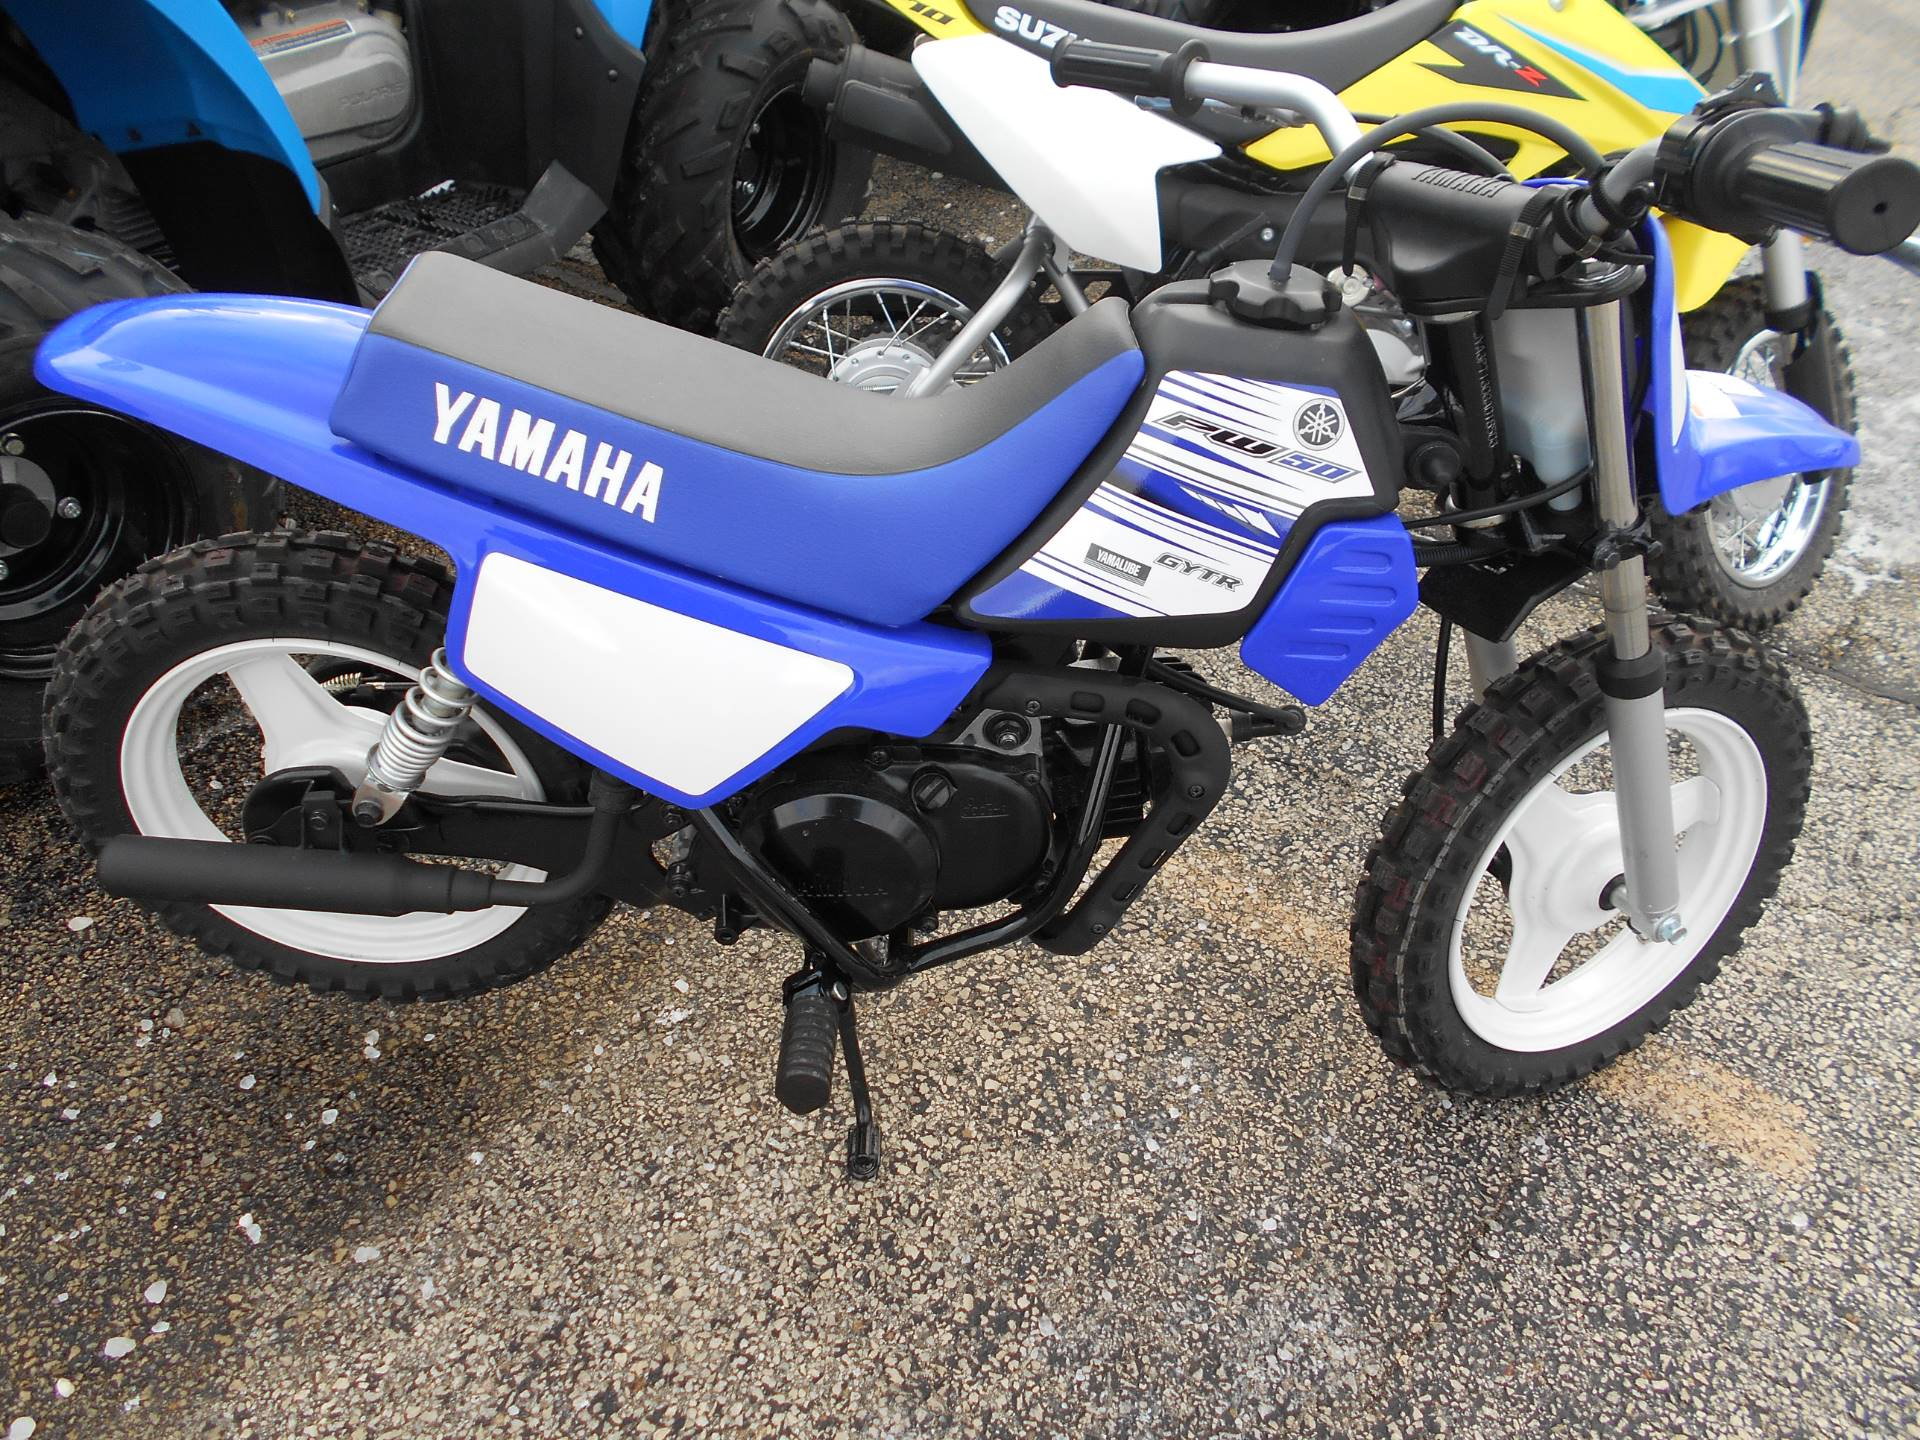 New 2016 Yamaha PW50 Motorcycles in Belvidere, IL